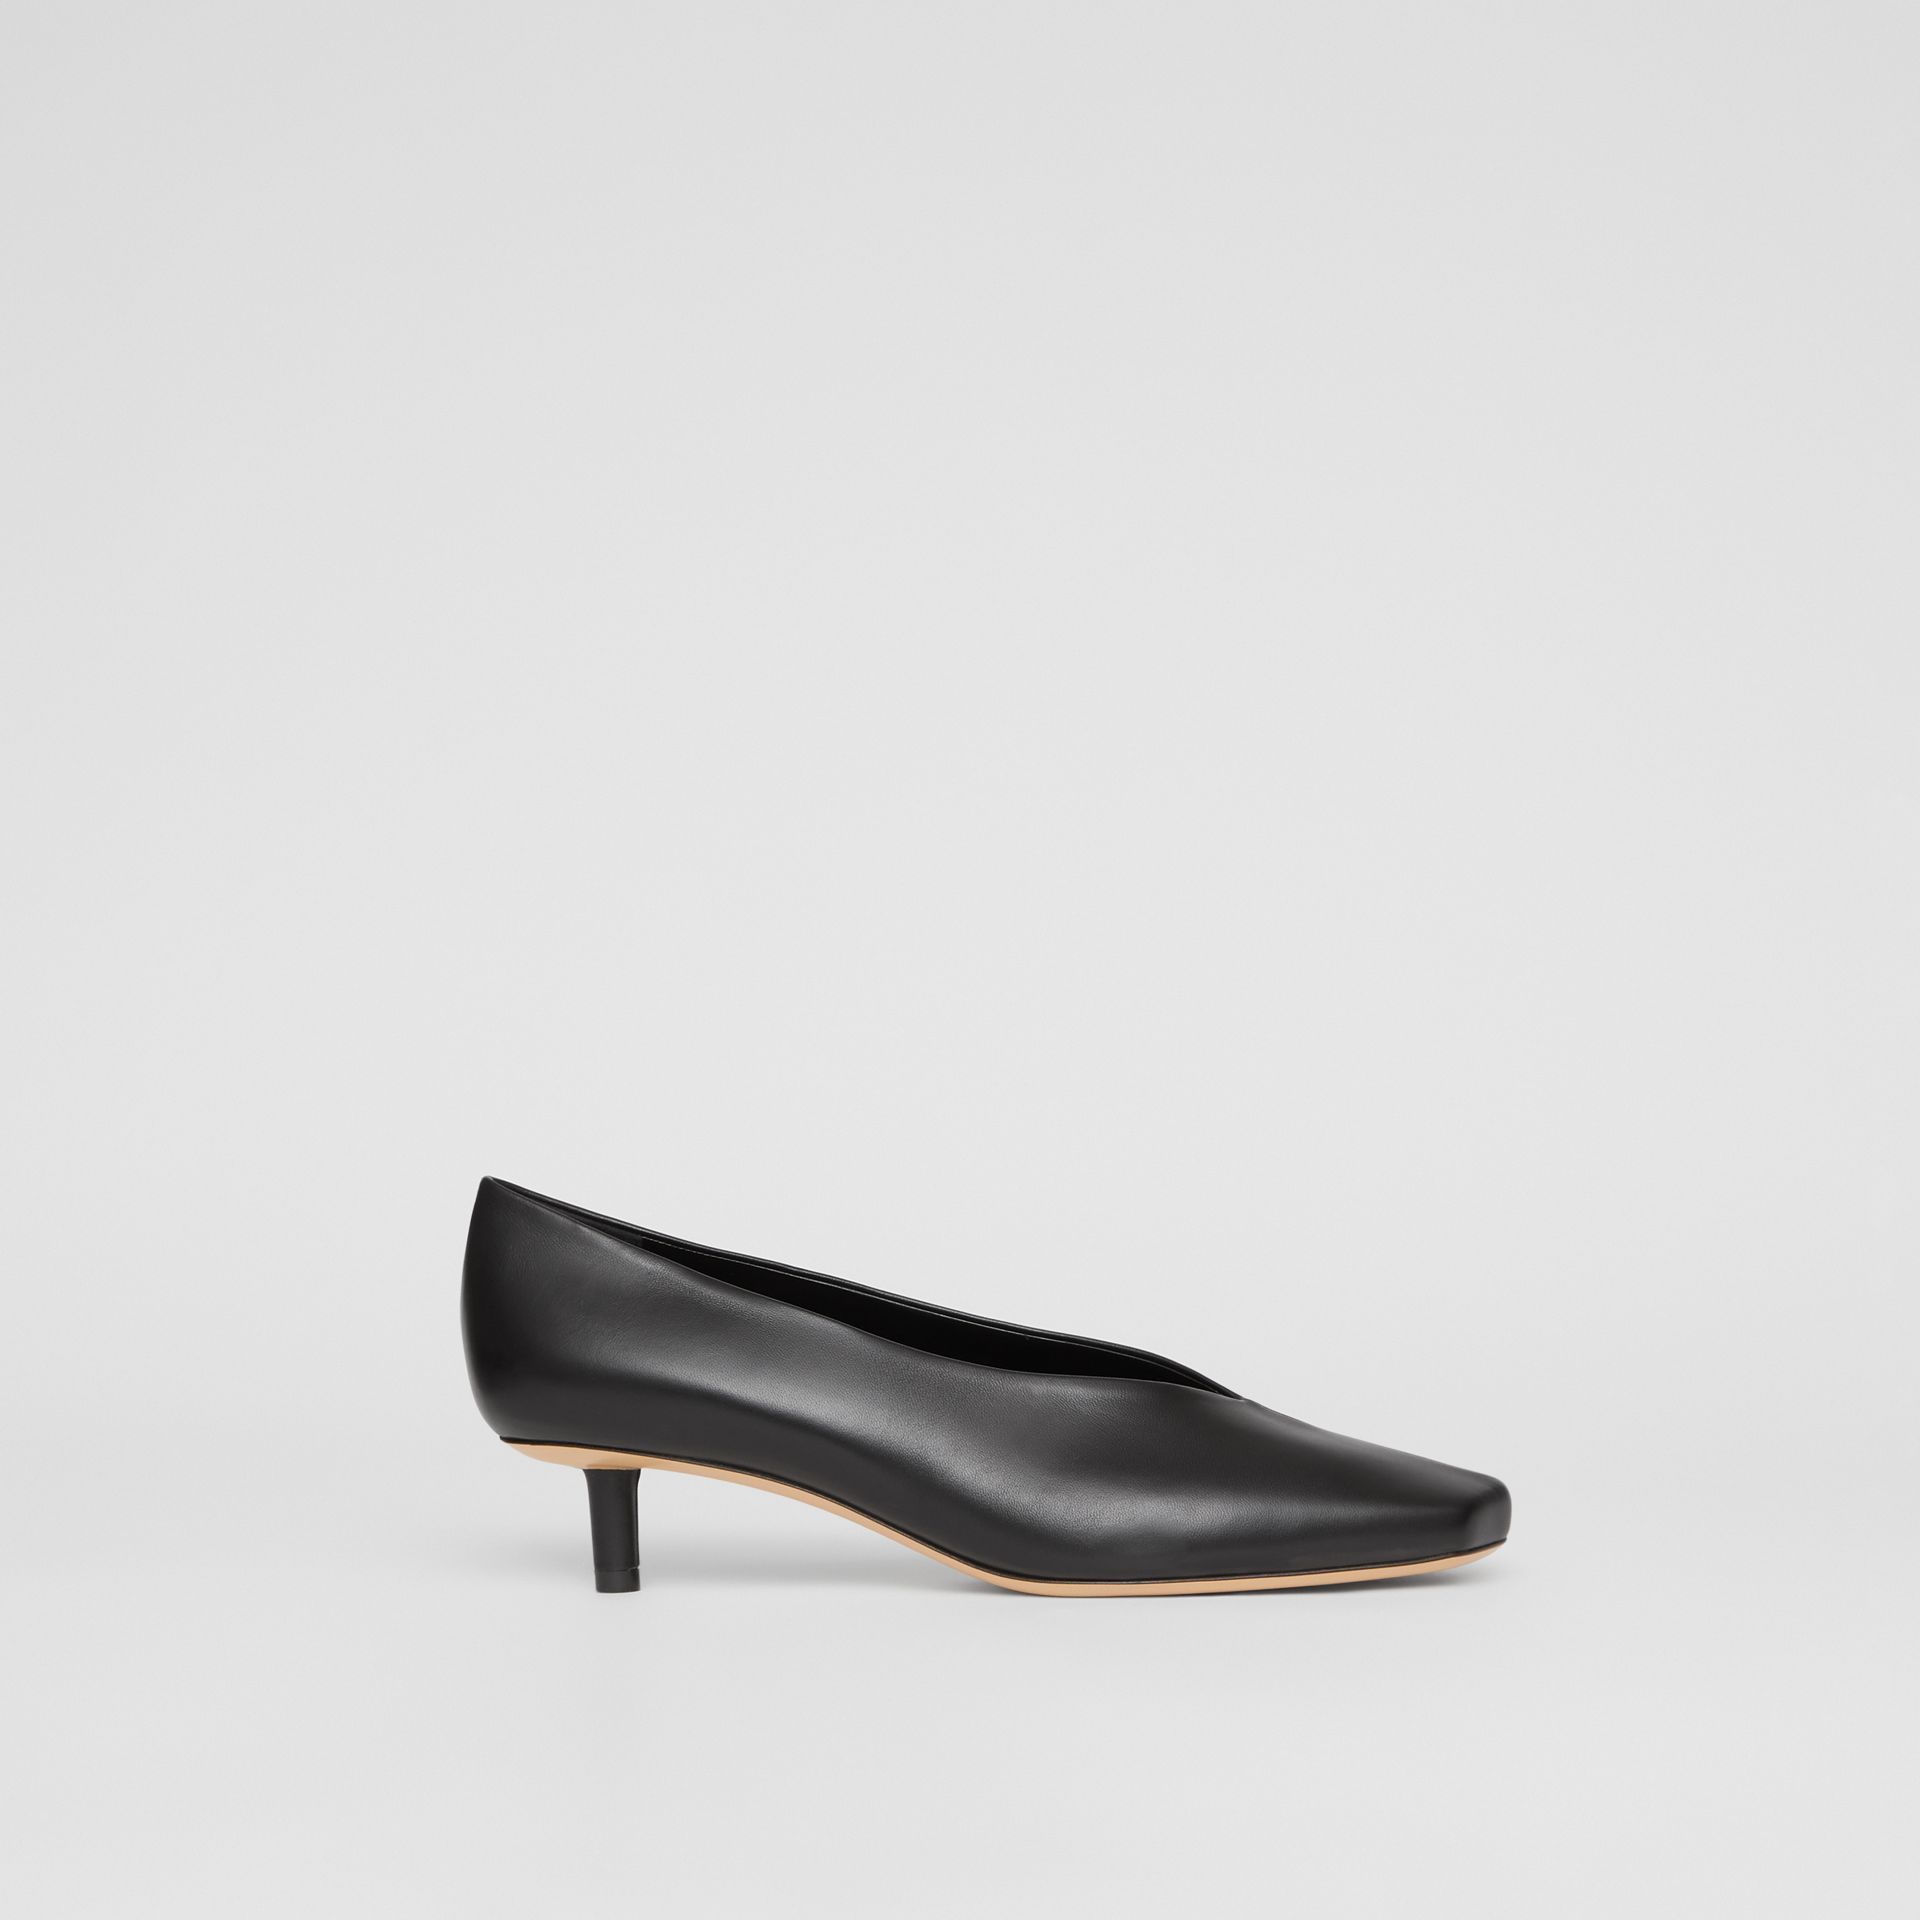 Lambskin Sculptural Kitten-heel Pumps in Black - Women | Burberry - gallery image 5